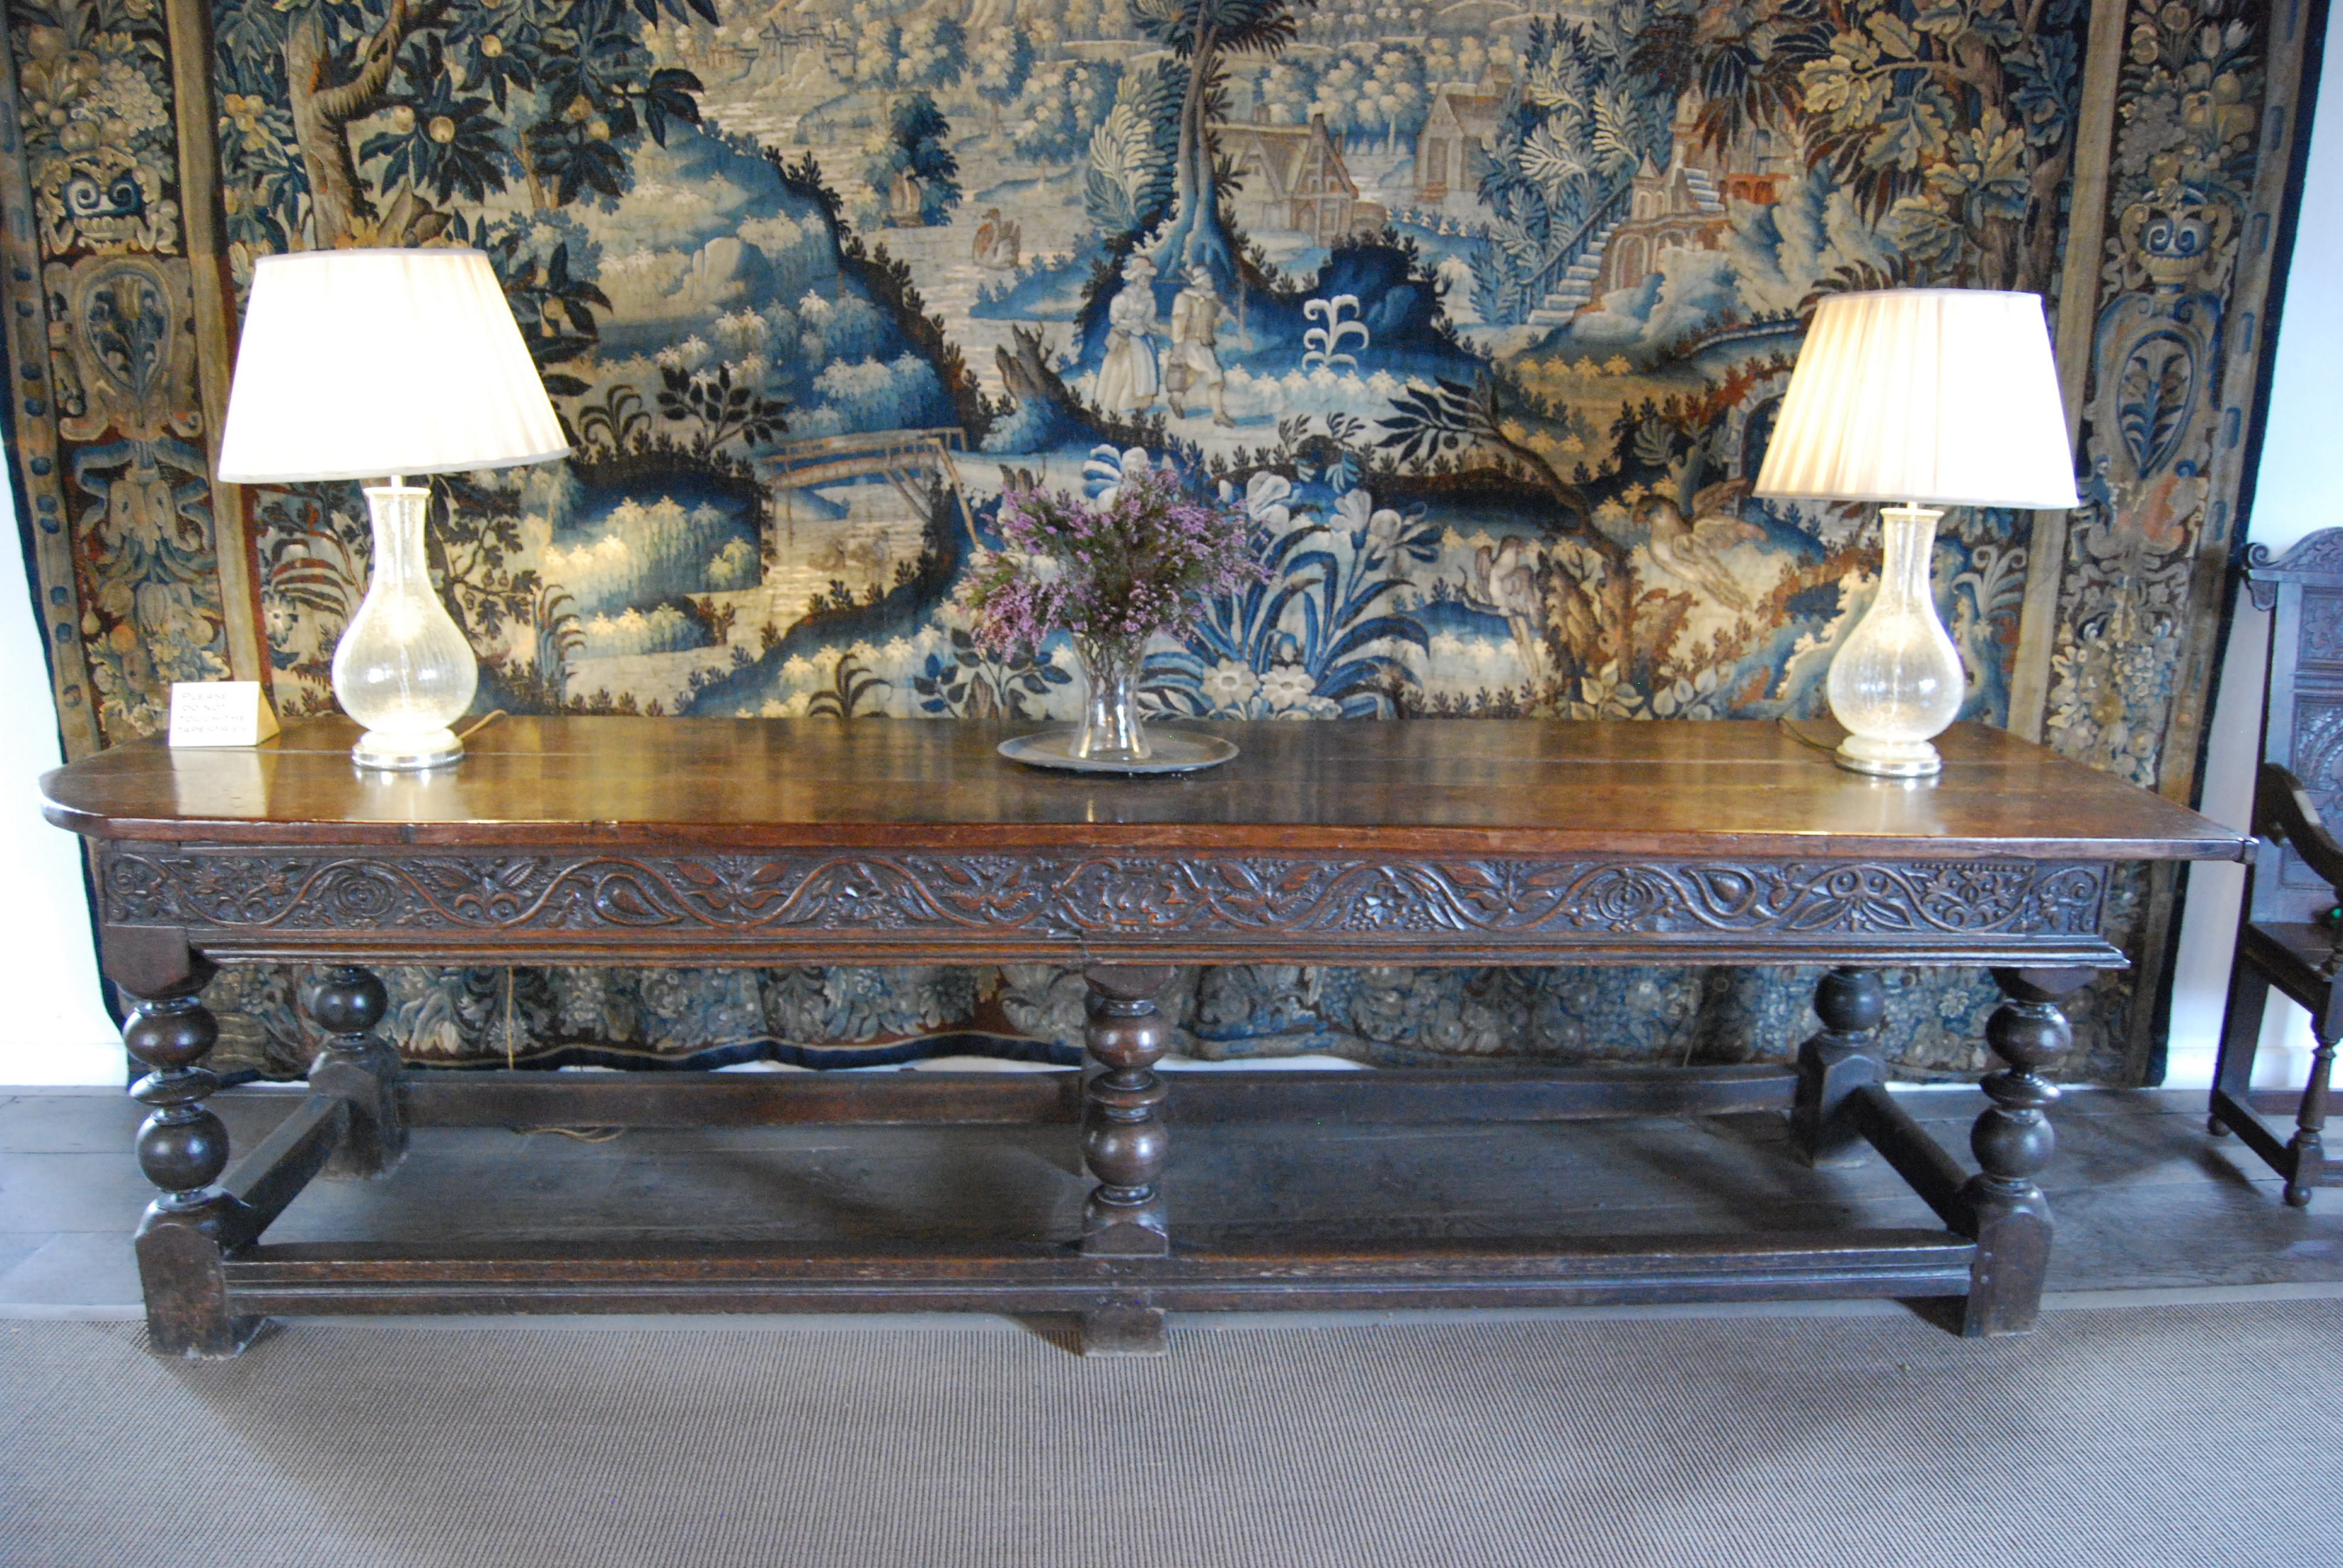 Amazing Tapestry, Oak Table, And Chair, Haddon Hall, Derbyshire (©Grand Tours